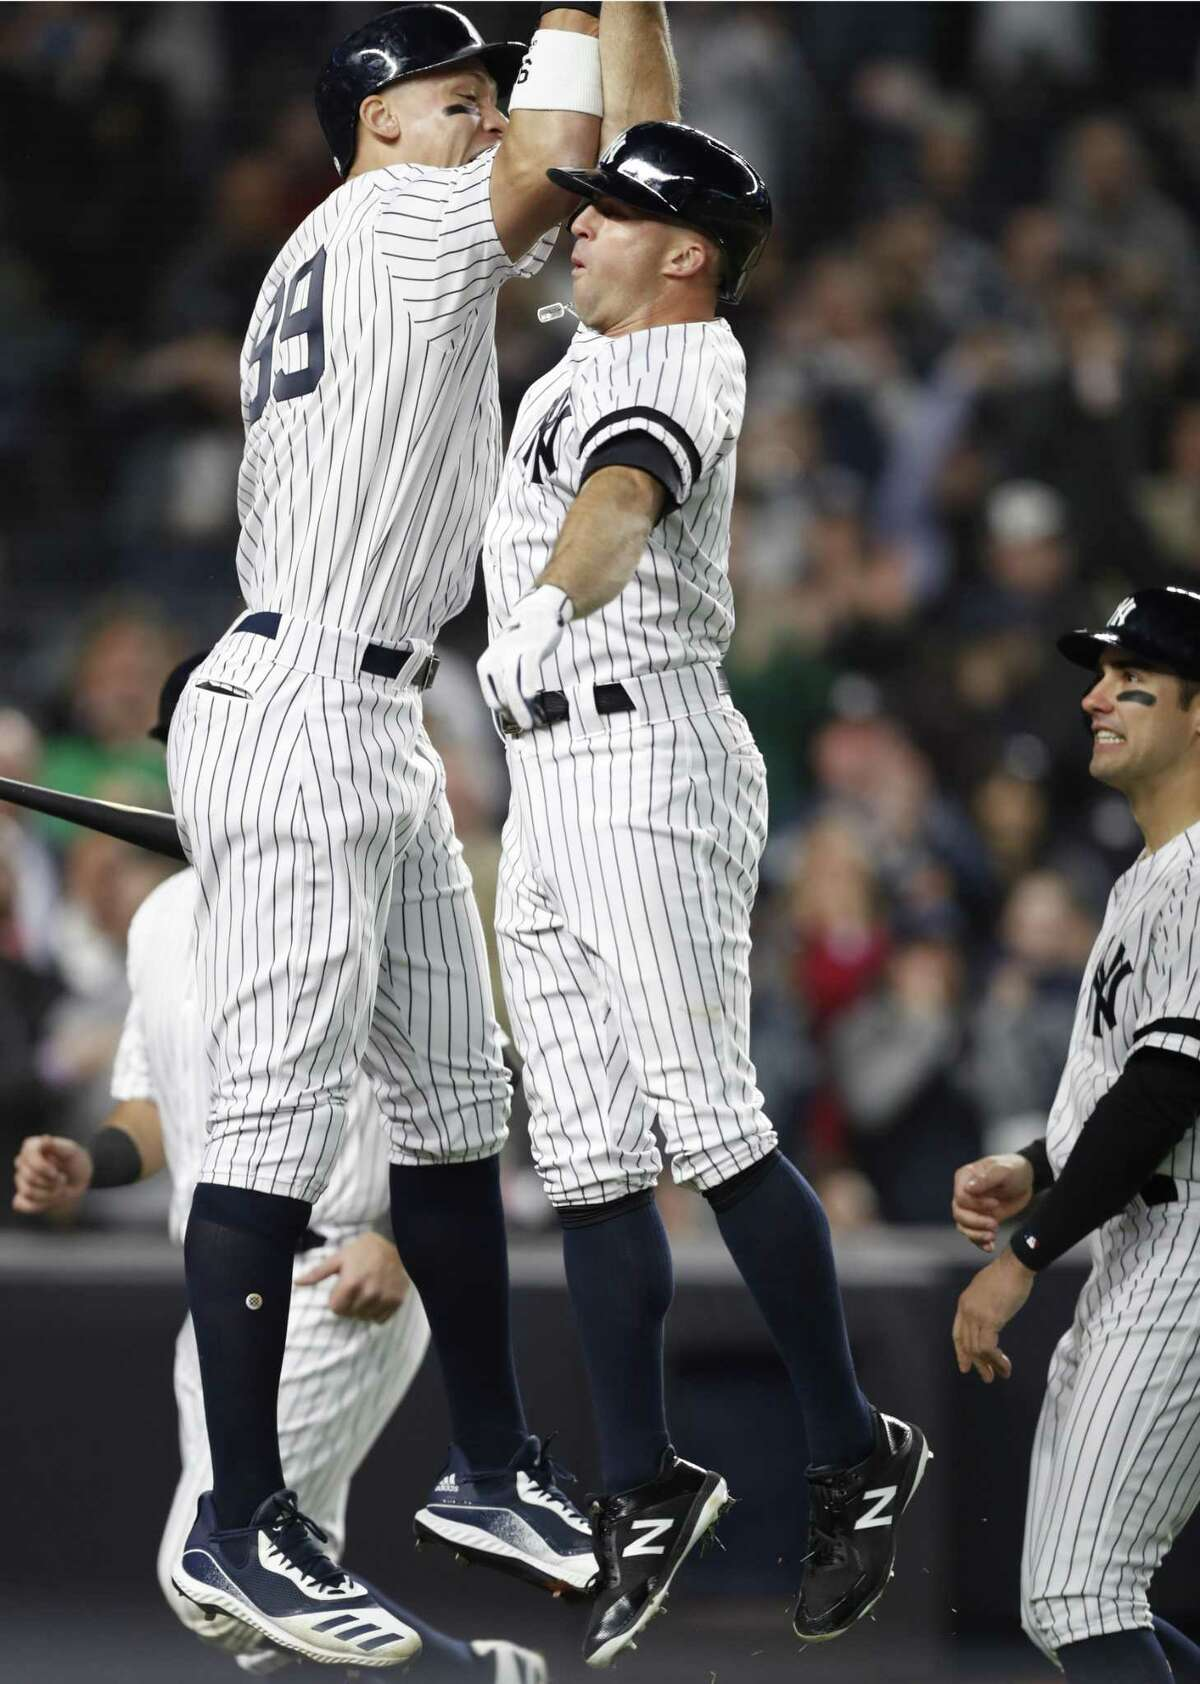 New York Yankees Mike Tauchman, right, watches as New York Yankees center fielder Brett Gardner (11) and Yankees on-deck batter Aaron Judge celebrate Gardner's seventh-inning, grand slam in a baseball game against the Boston Red Sox, Wednesday, April 17, 2019, in New York. (AP Photo/Kathy Willens)